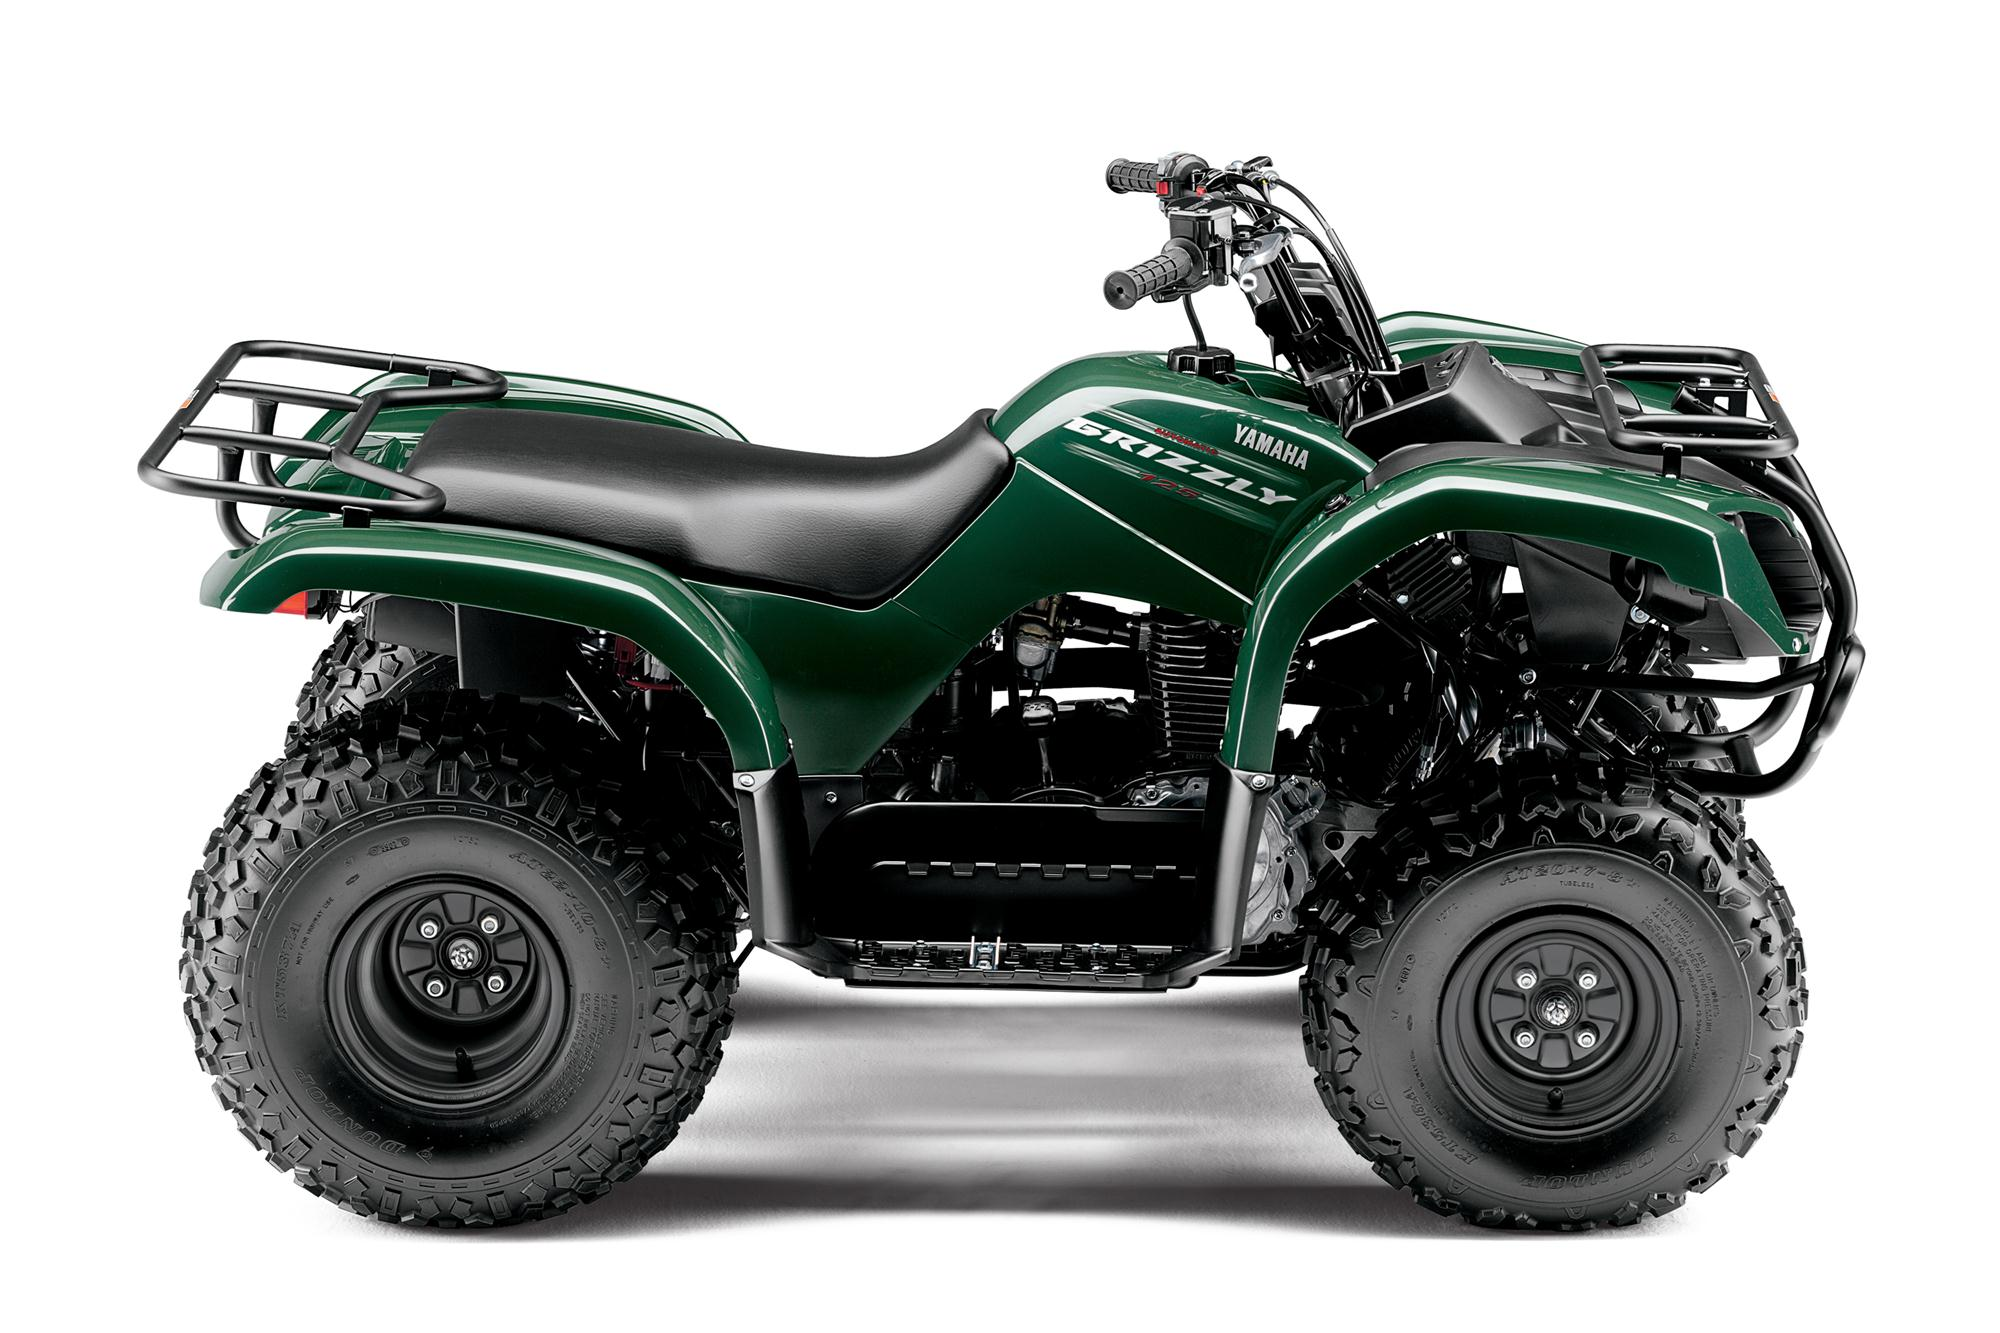 2013 yamaha grizzly 125 automatic the easy way to for Yamaha atv 125